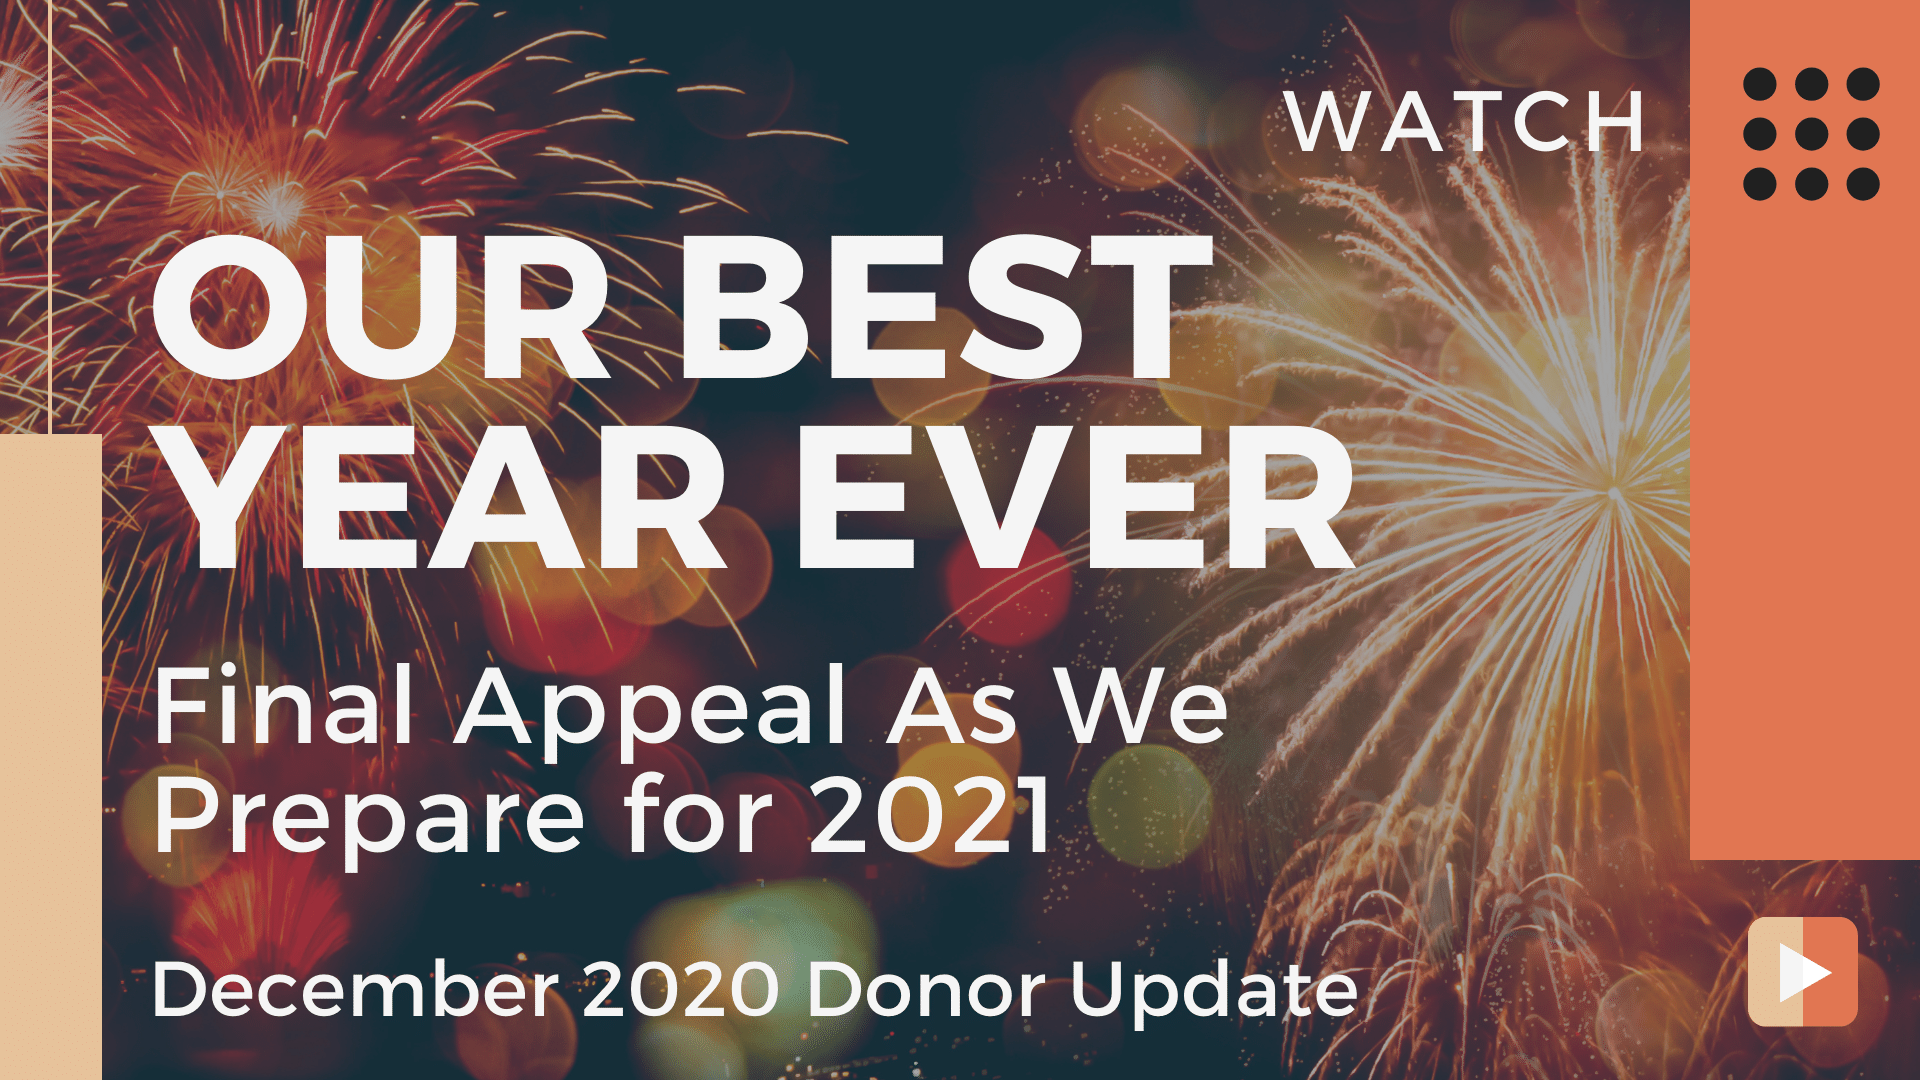 December 2020 Donor Update